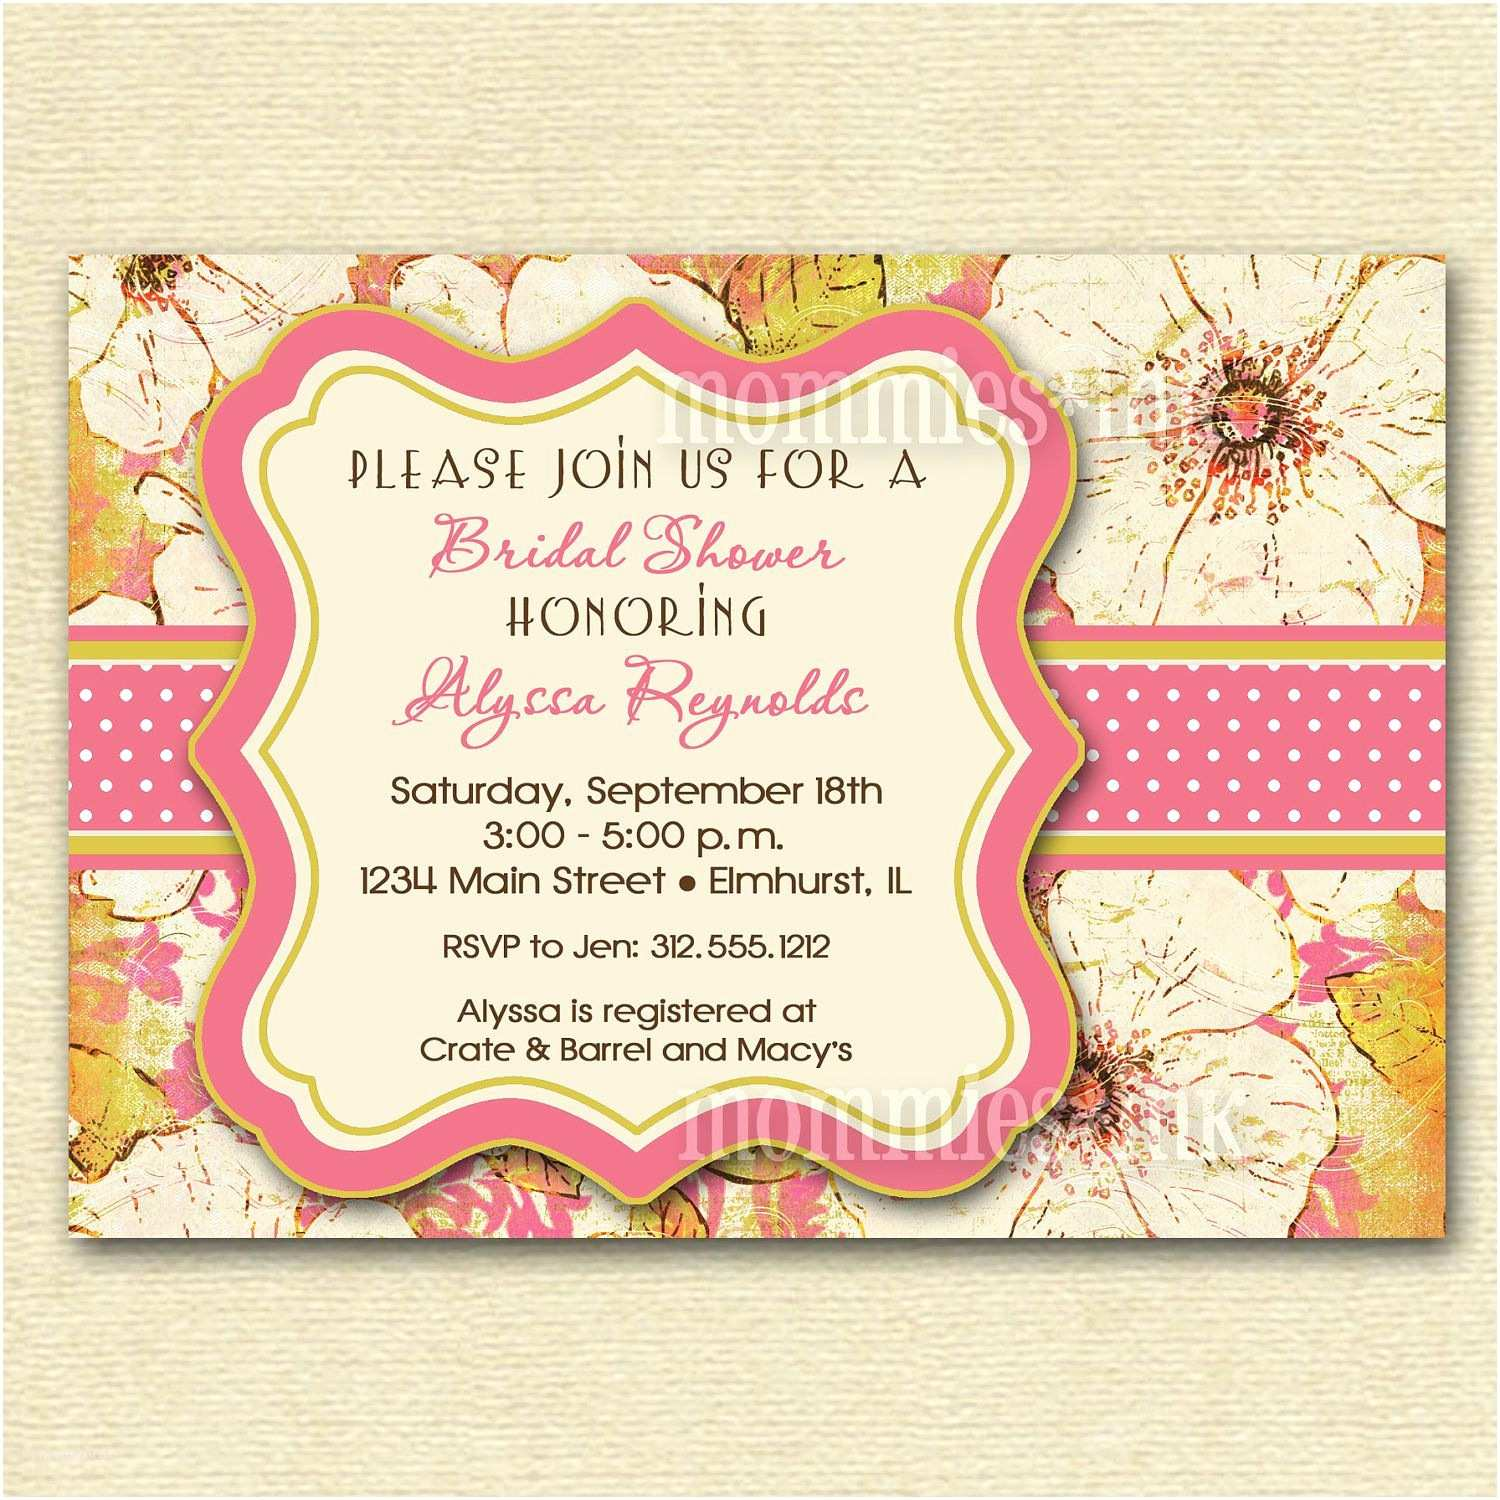 Bridal Shower Invitation Etiquette event Invitation Holiday Invitation Cards Card